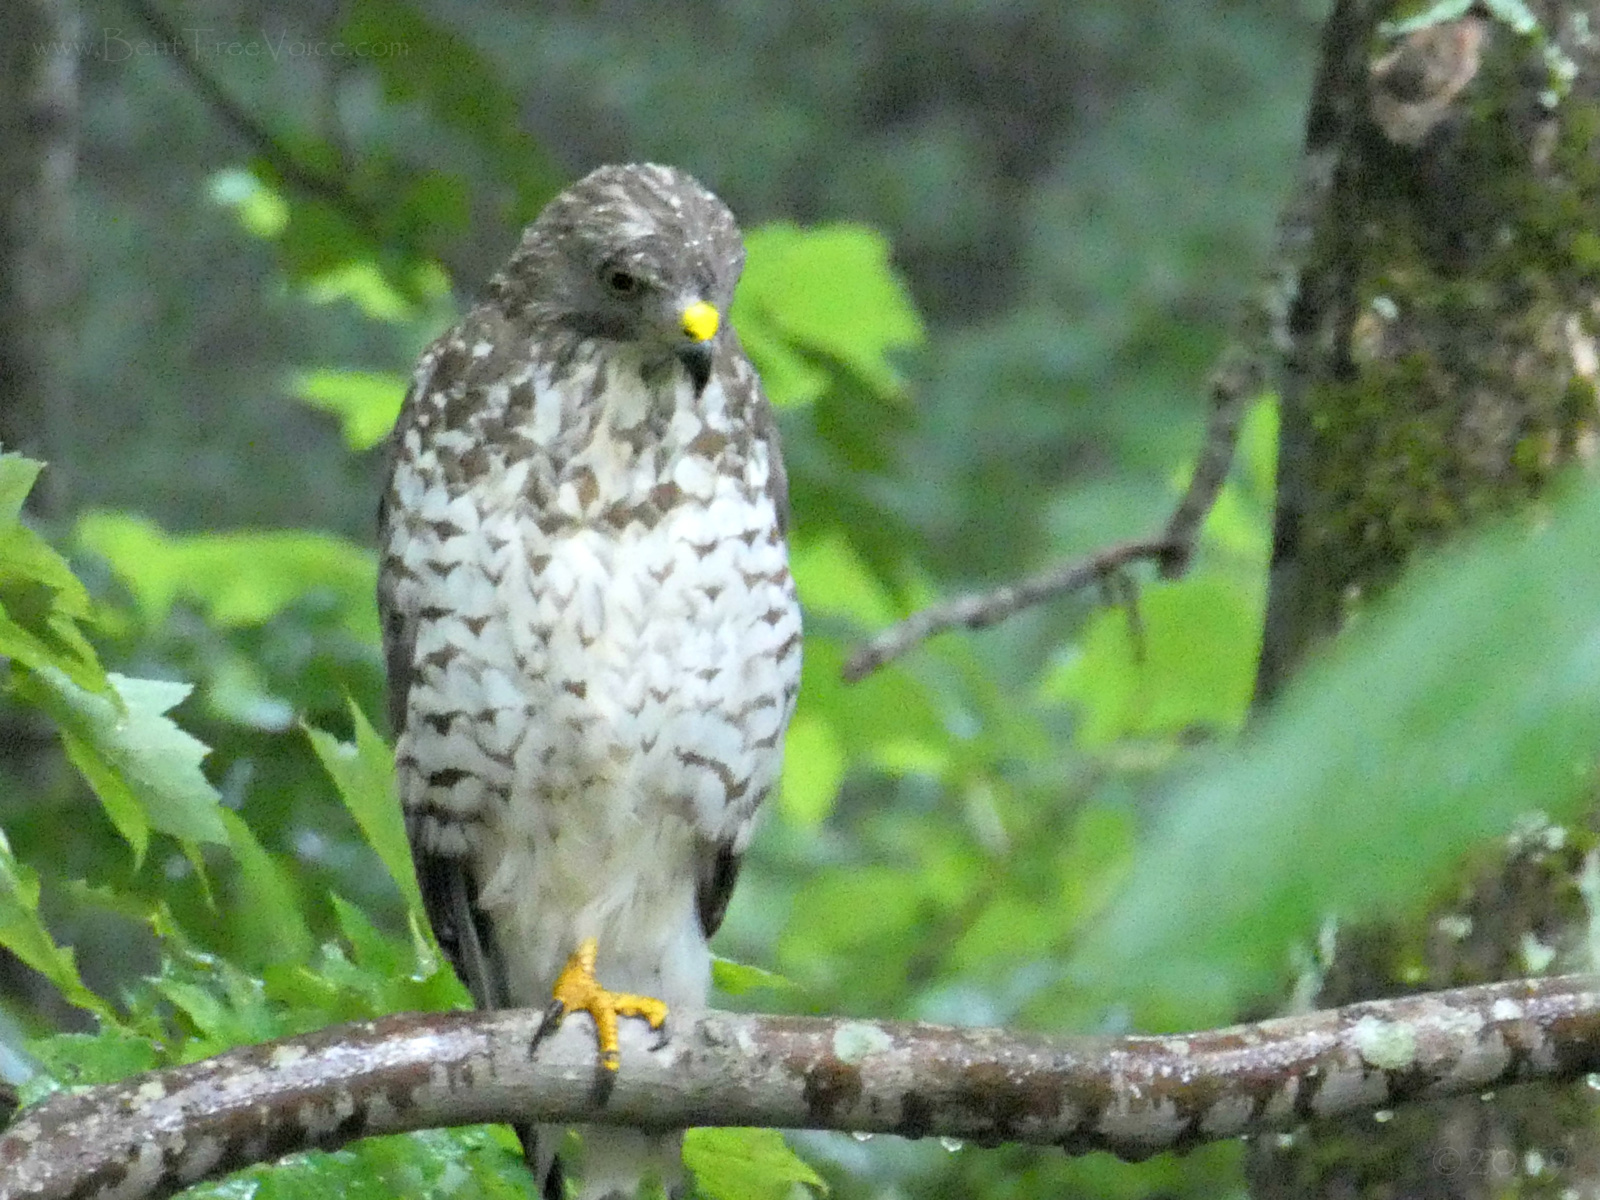 July 19, 2019 - A hawk in Bent Tree